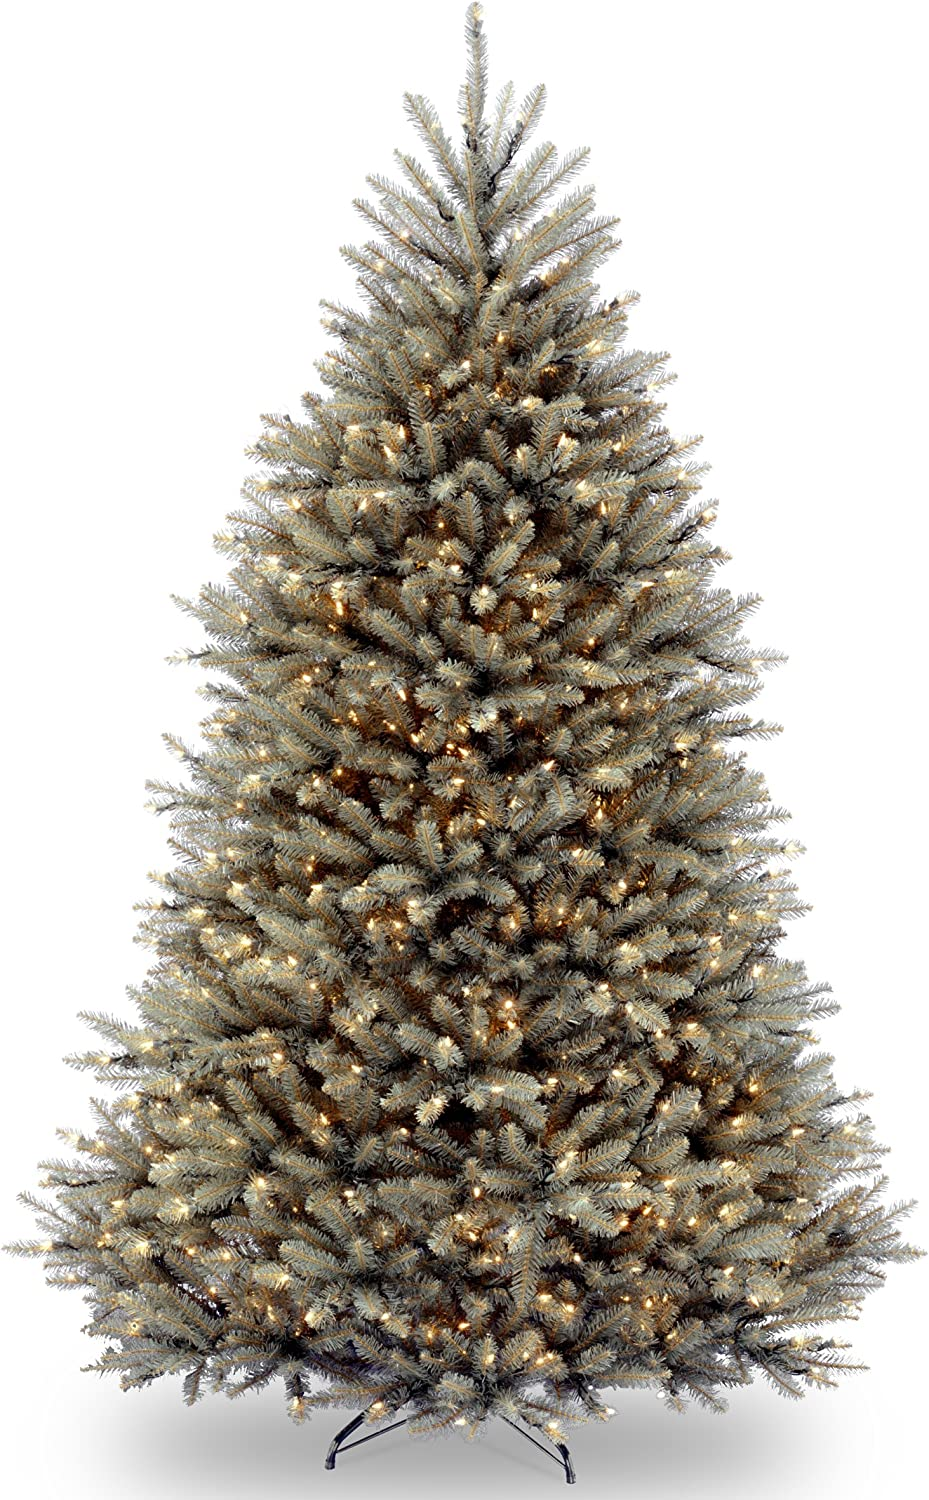 National Tree Company Pre-lit Artificial Christmas Tree | Includes Pre-strung White Lights and Stand | Dunhill Blue Fir - 7.5 ft